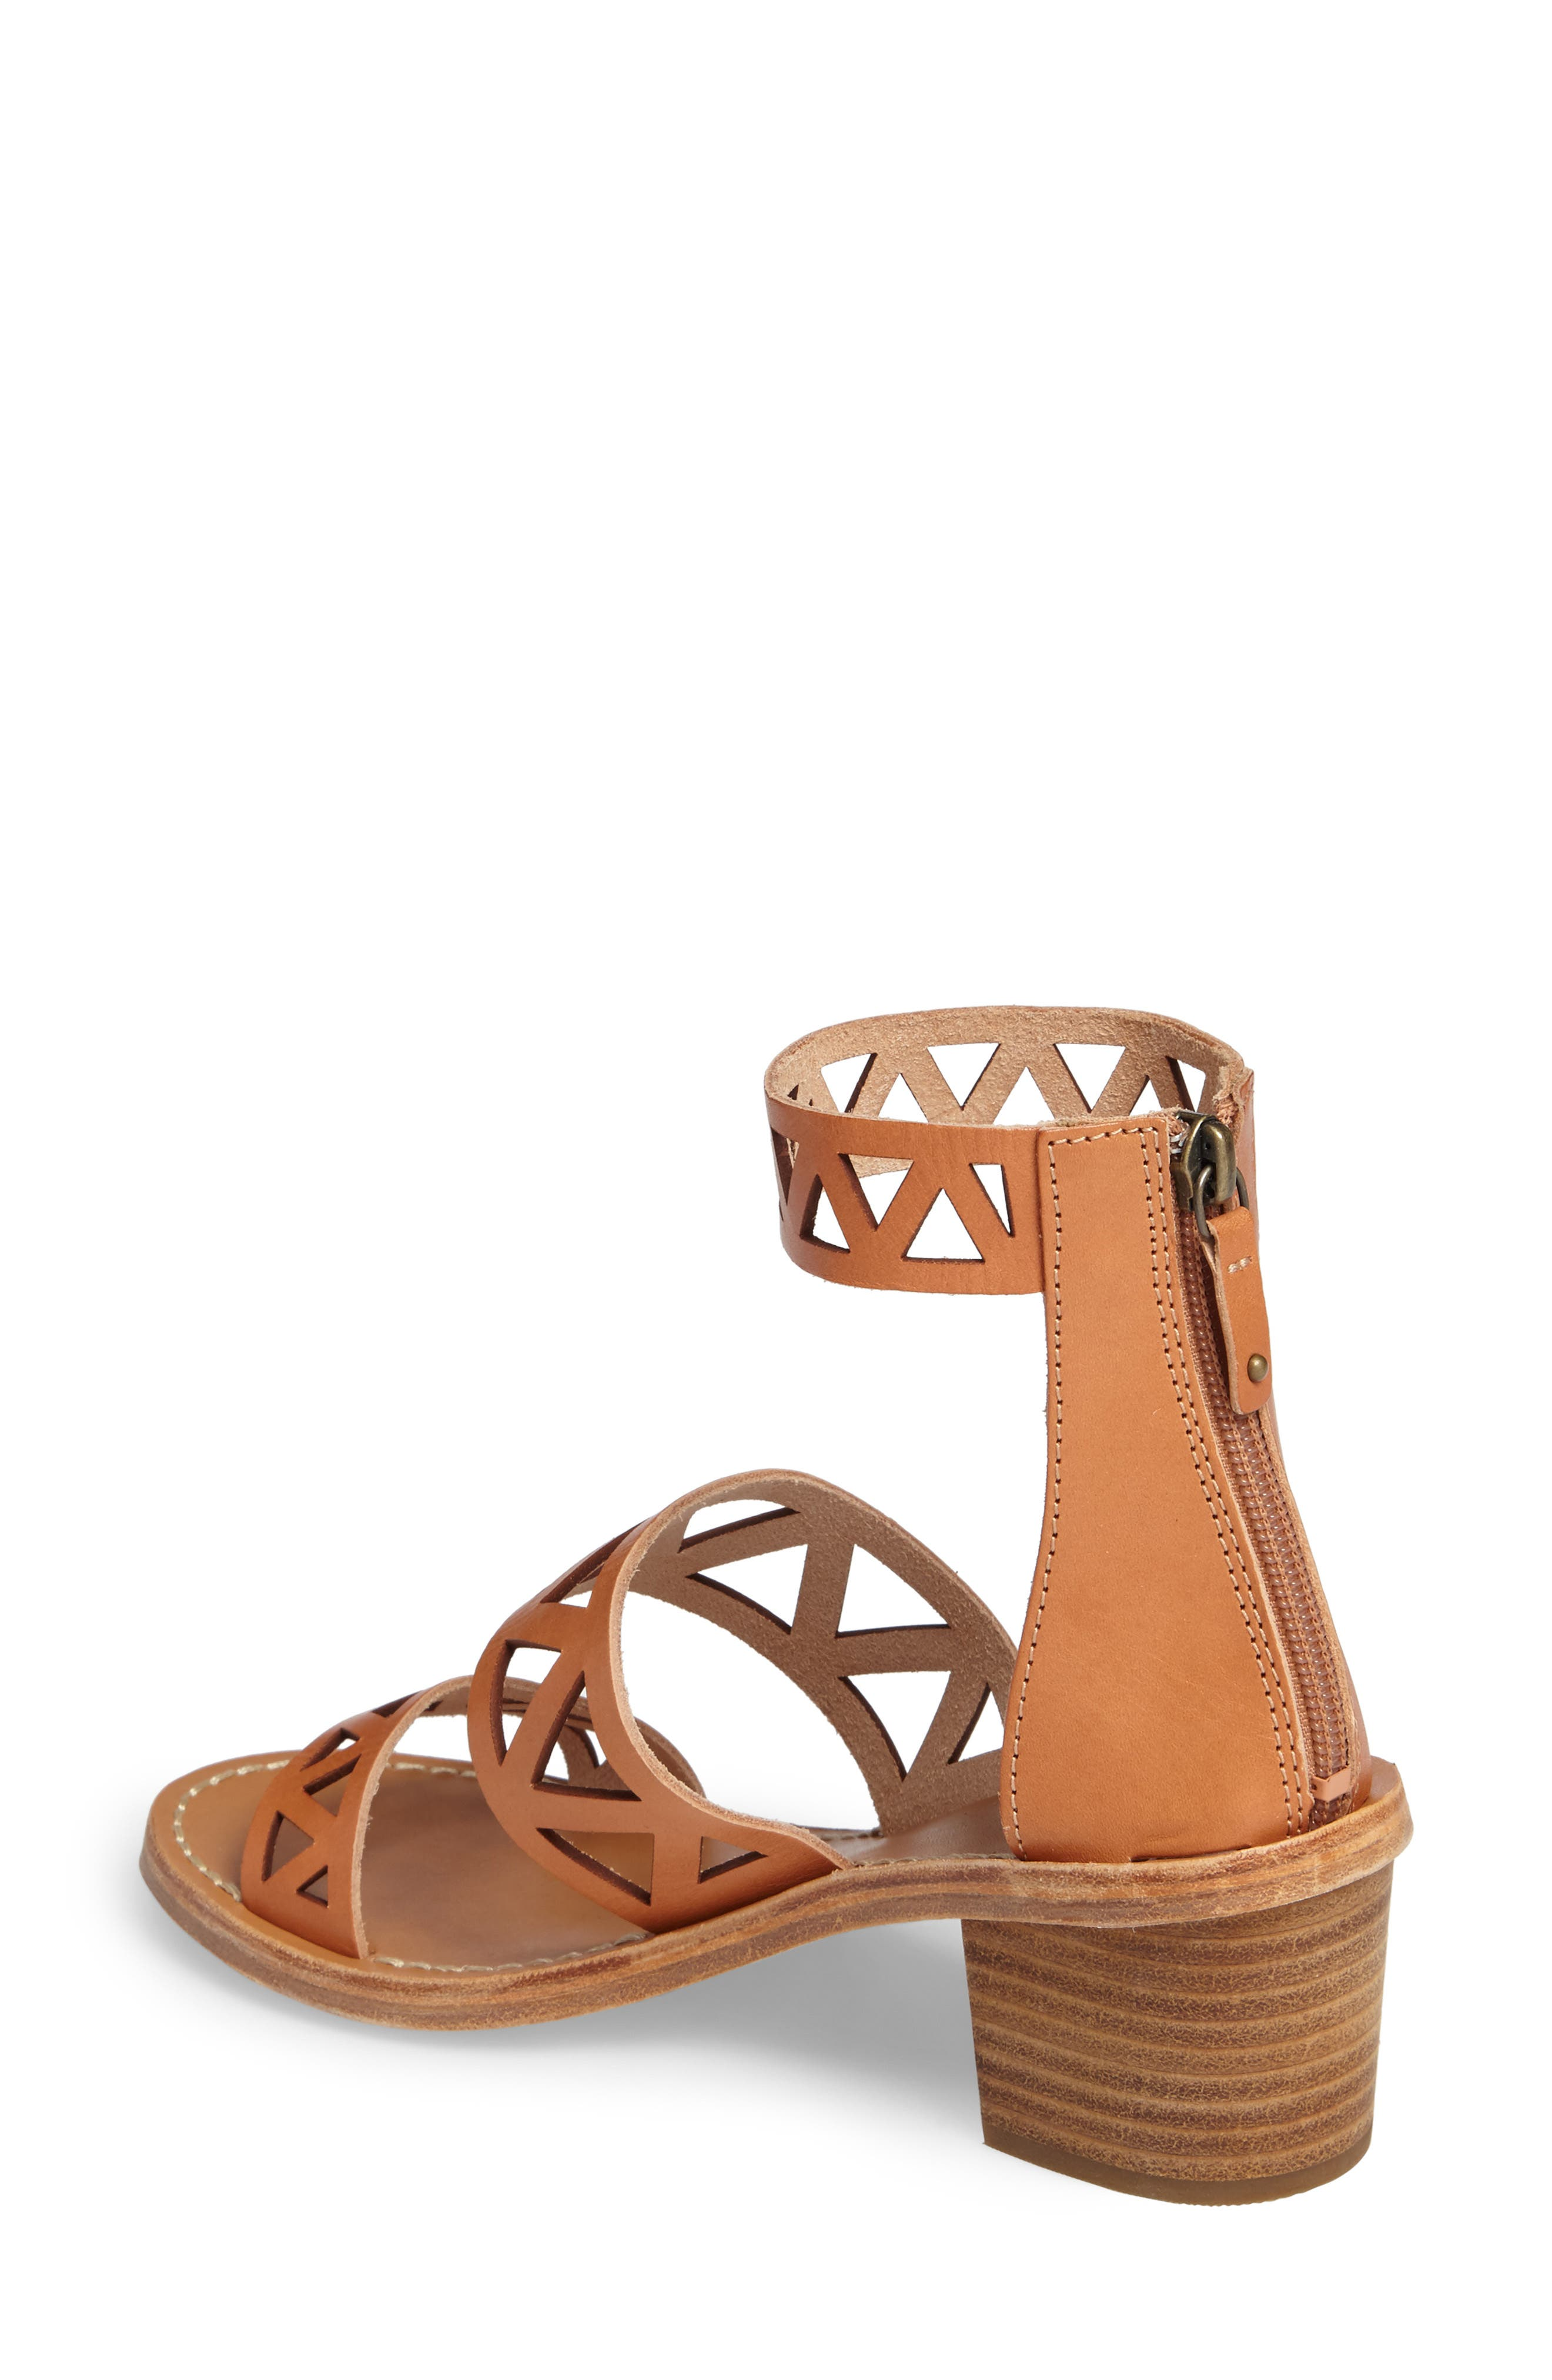 Perforated Ankle Strap Sandal,                             Alternate thumbnail 2, color,                             200